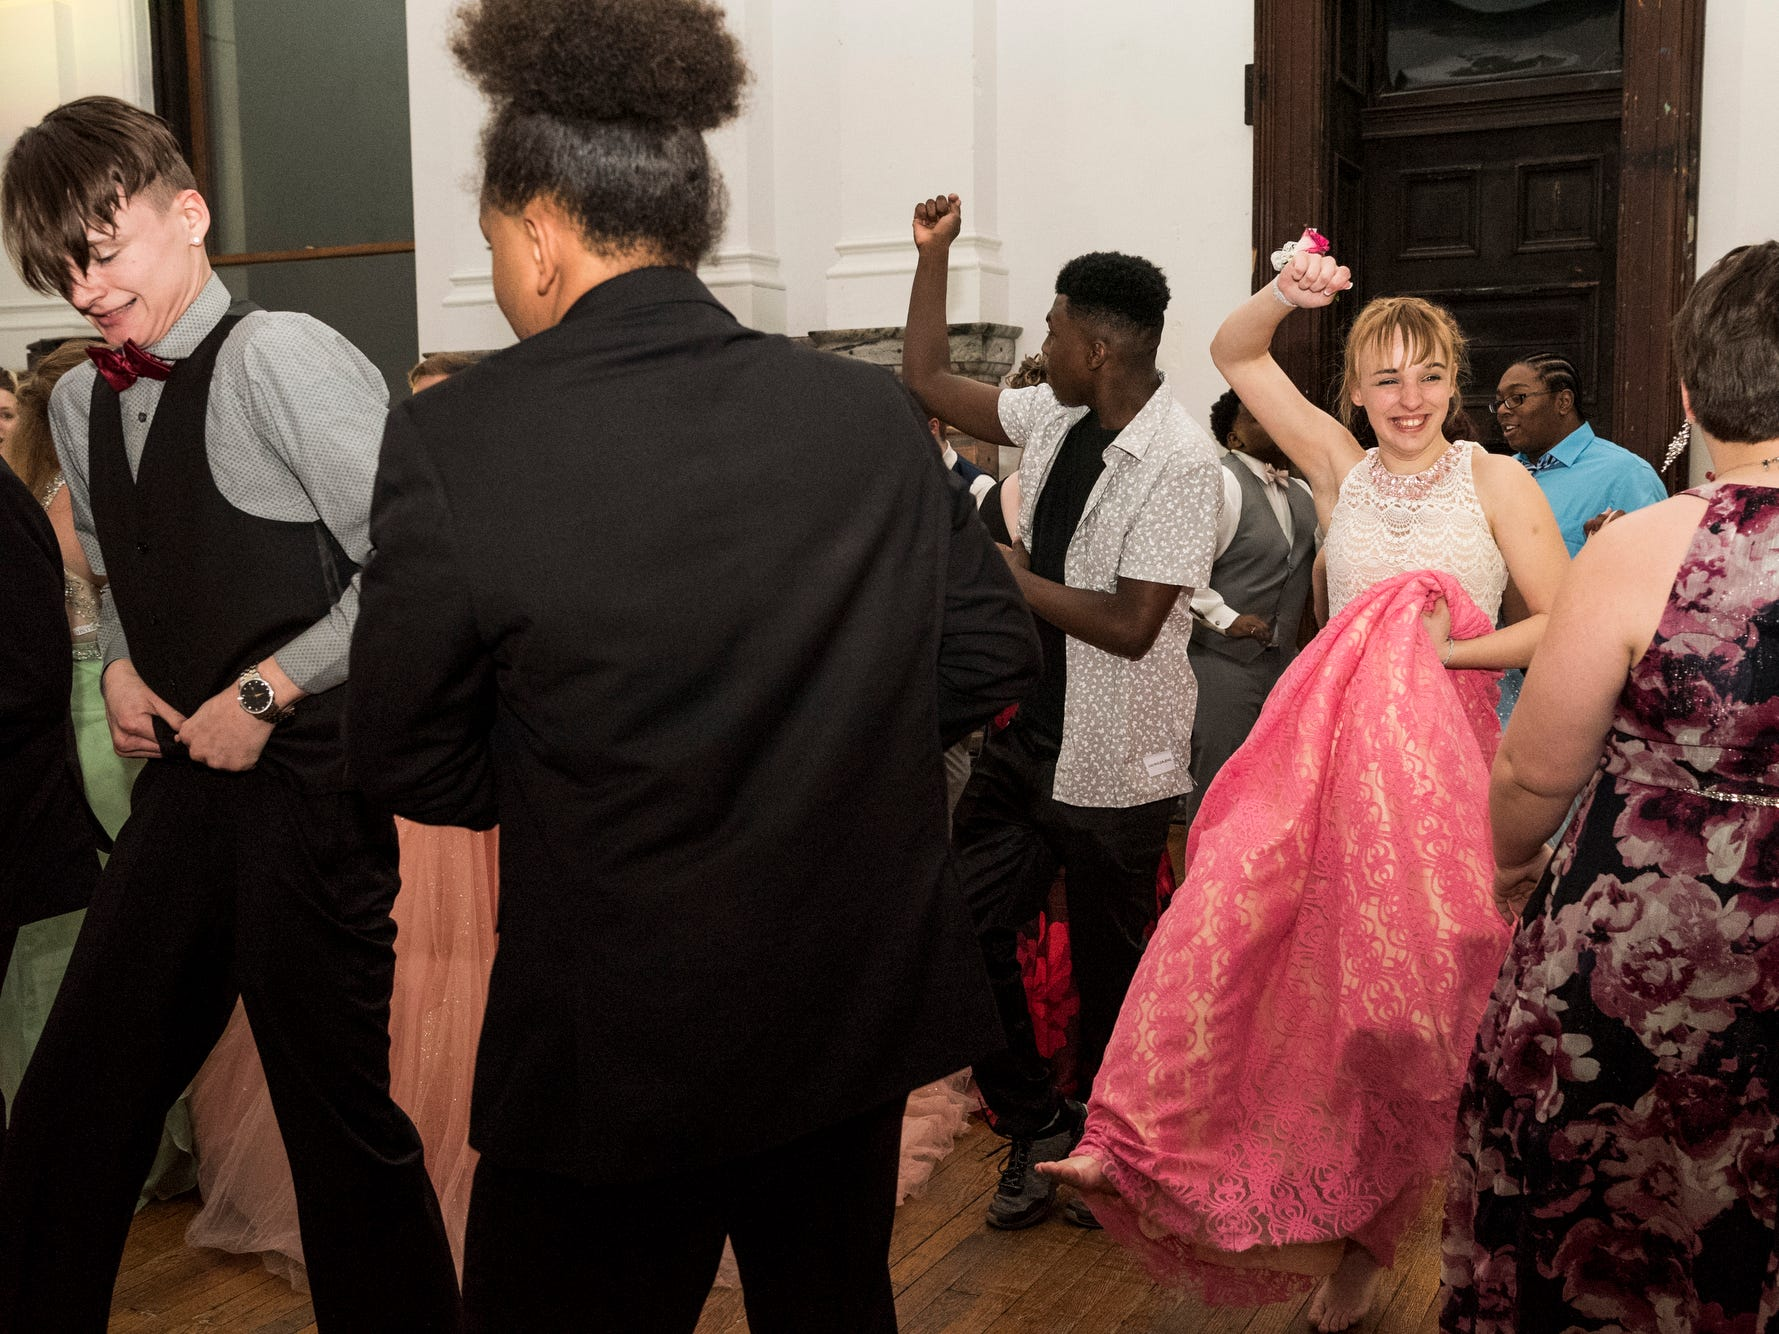 Bosse High School students dance the night away during prom at the Old Vanderburgh County Courthouse in downtown Evansville, Ind., Saturday, April 6, 2019.